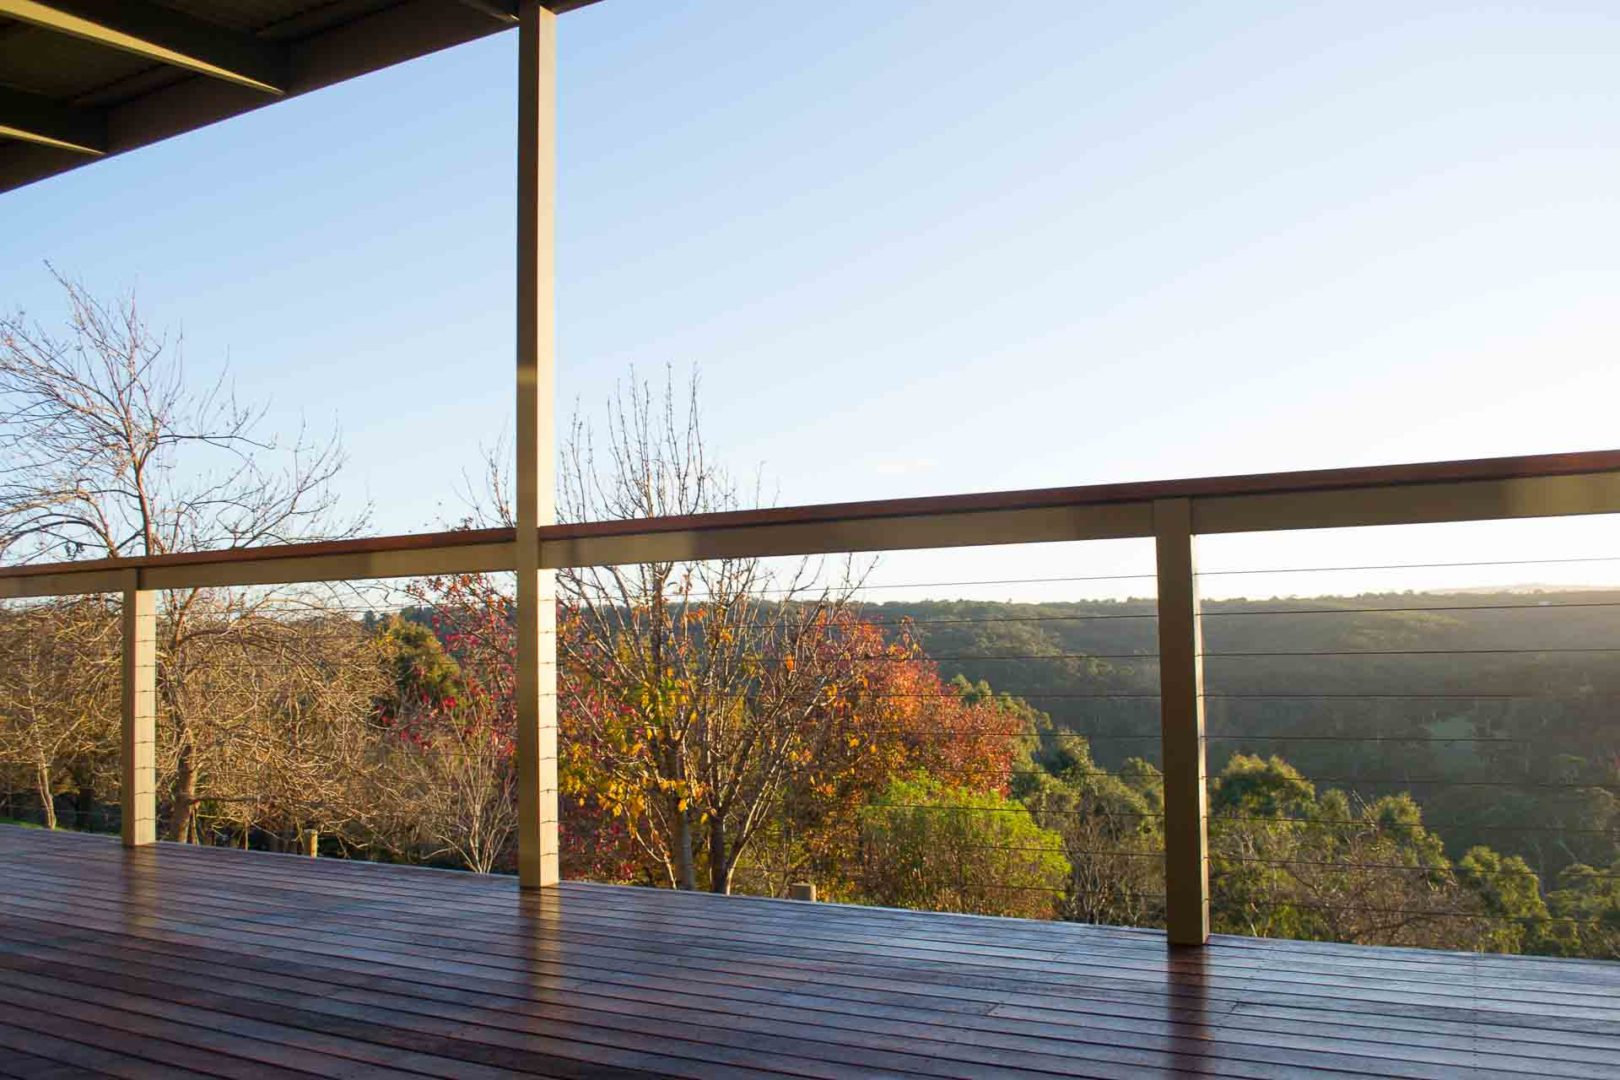 How to oil your timber deck - All you need to know about oiling your timber decking, Australian Outdoor Living.